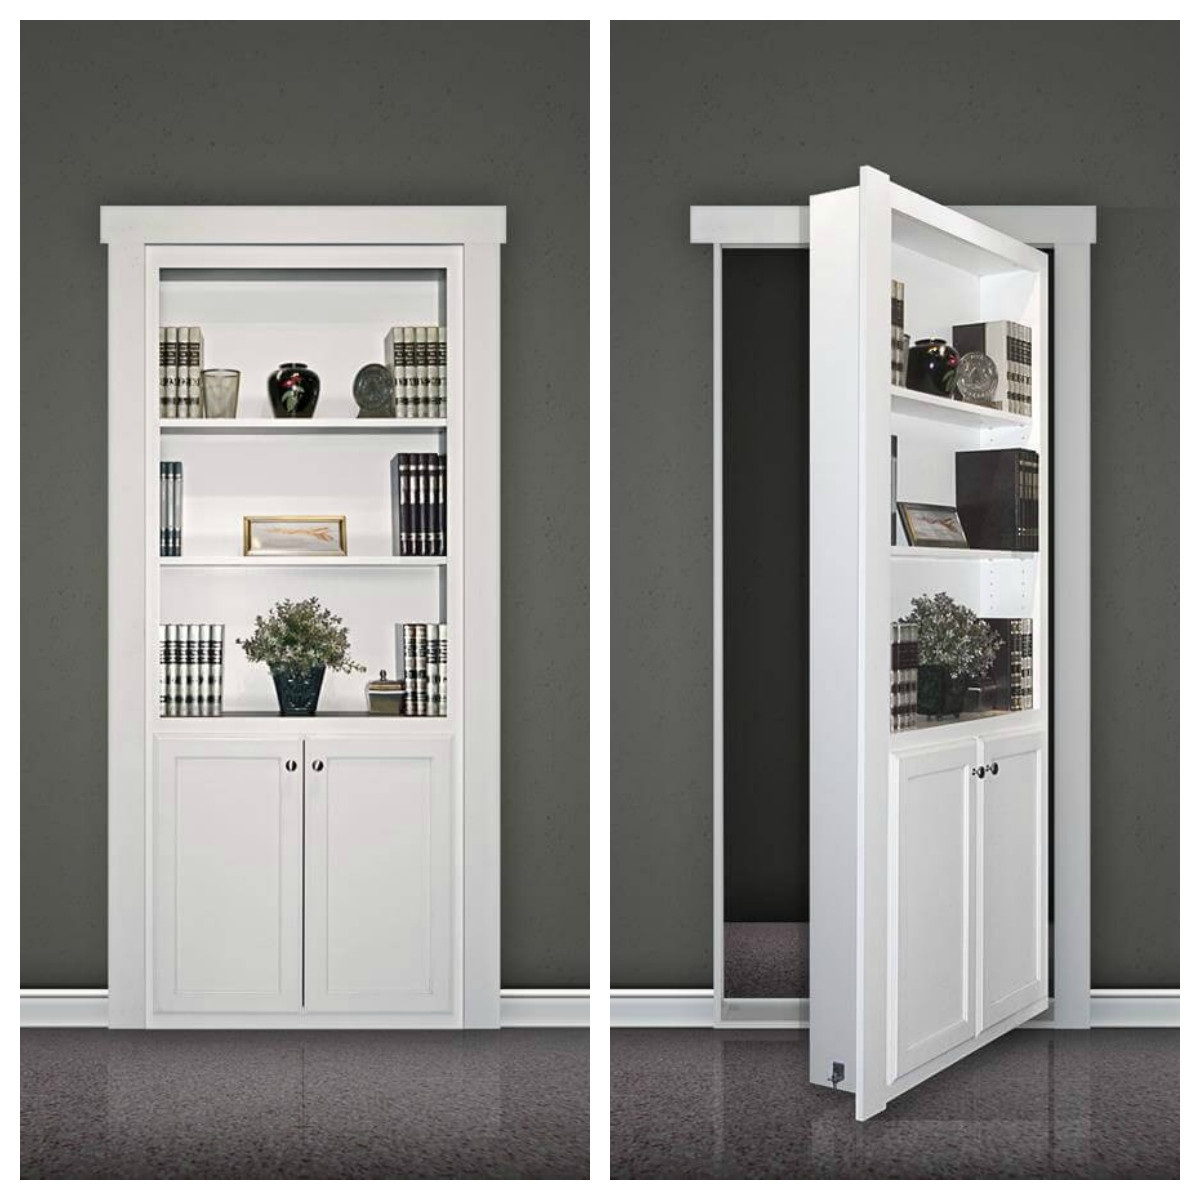 Fulfill A Childhood Dream With A Hidden Door Kit Fine Homebuilding Within Built In Bookcase Kits (#8 of 15)